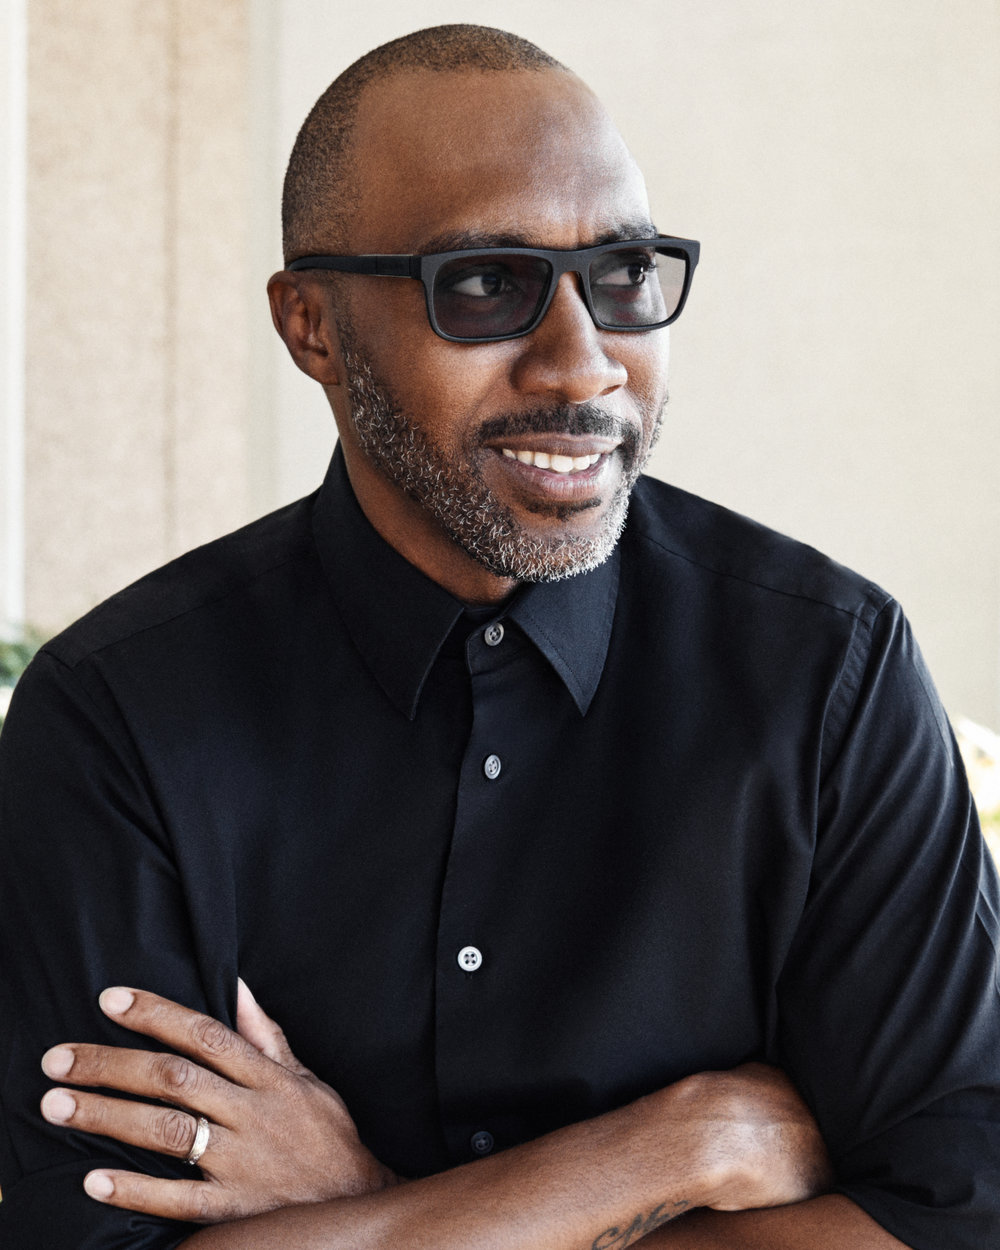 MAURICE MARABLE ||DIRECTOR ||EPISODE 8 - IF IT'S YOUR LIFE AND IT'S YOUR JOURNEY YOU OWN IT